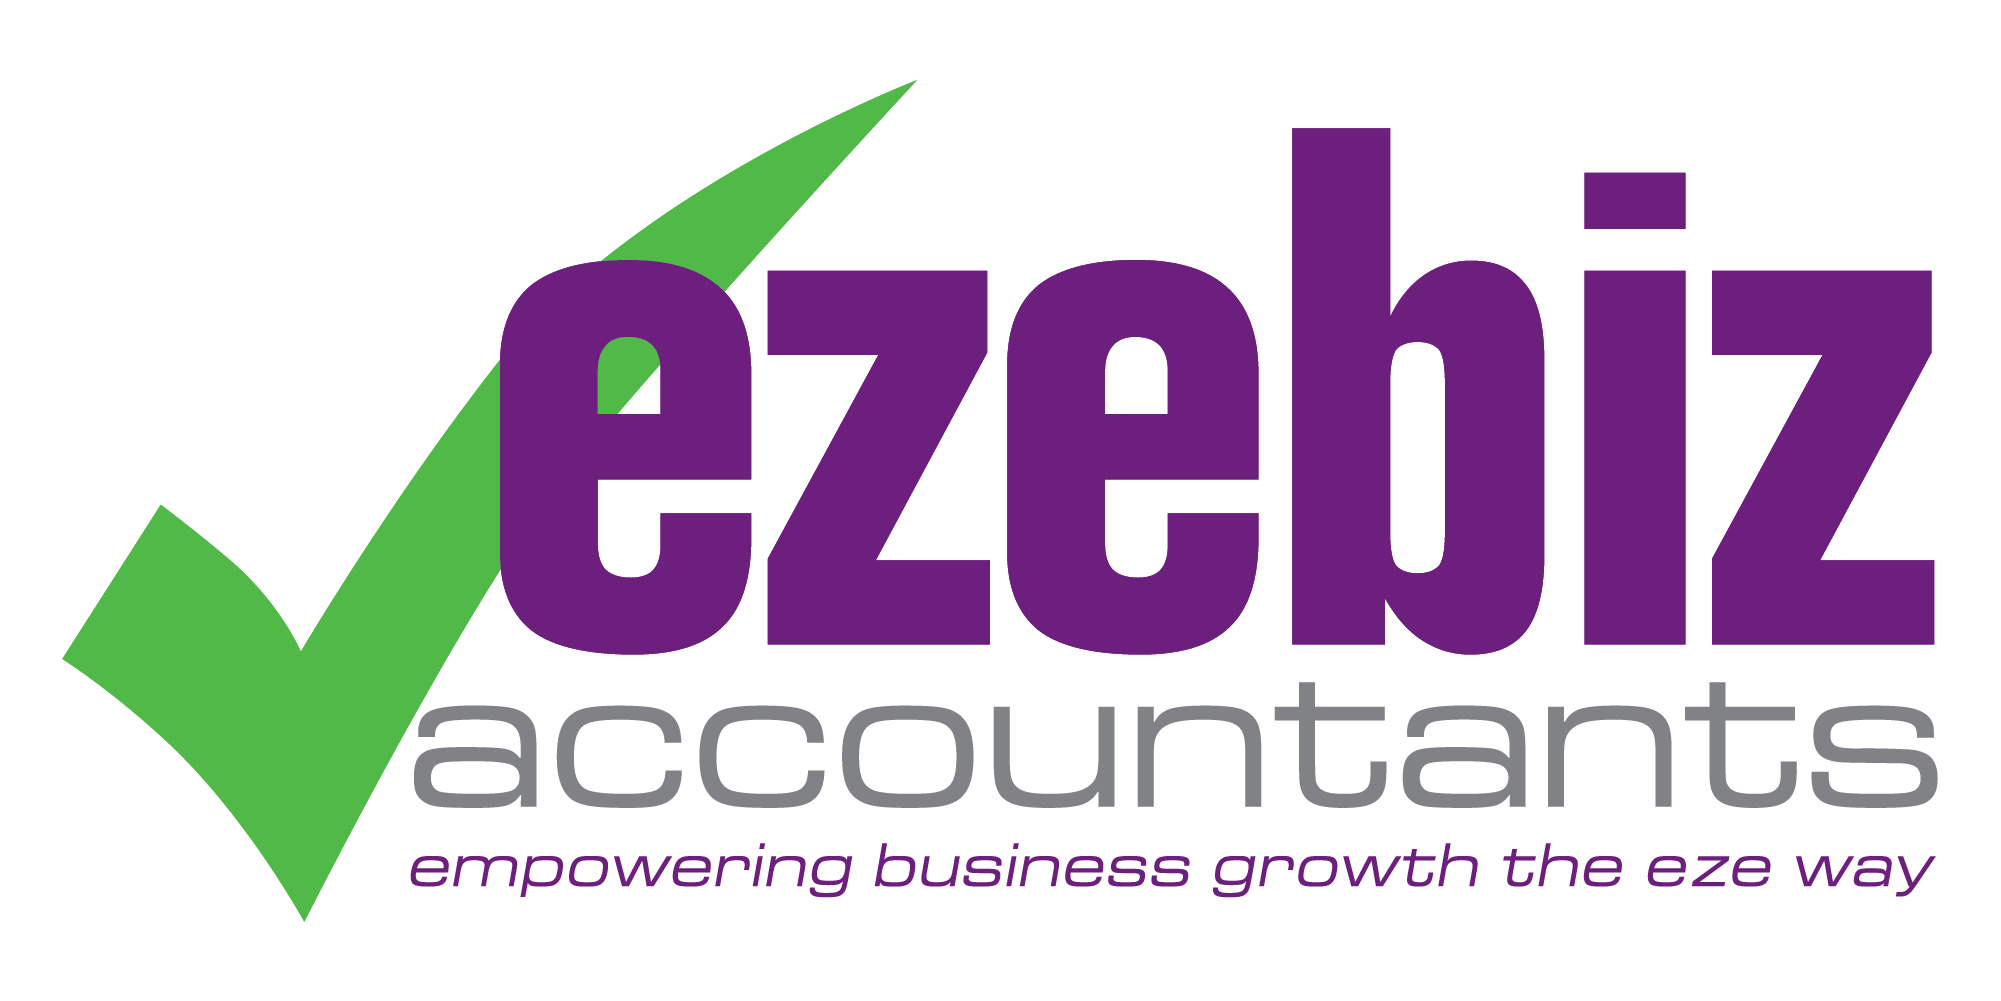 Ezebiz Accountants Whakatane | Bronwyn Pilkinton | Small Business Accounting | Tax Accountant | Tax Returns | Xero Training | Paye | Bookkeeping | MYOB | Local Accountants | Rental Property Compliance | Financial Planning | Business Coach | Biz Angels | End Of Year Tax Return | End of Year Financial Statements | Invoicing | Tax Your Local Accountants Whakatane | Ezebiz | Accounting Firm Whakatane | AKE | Arrow Accountants |  Focus Chartered Accountants